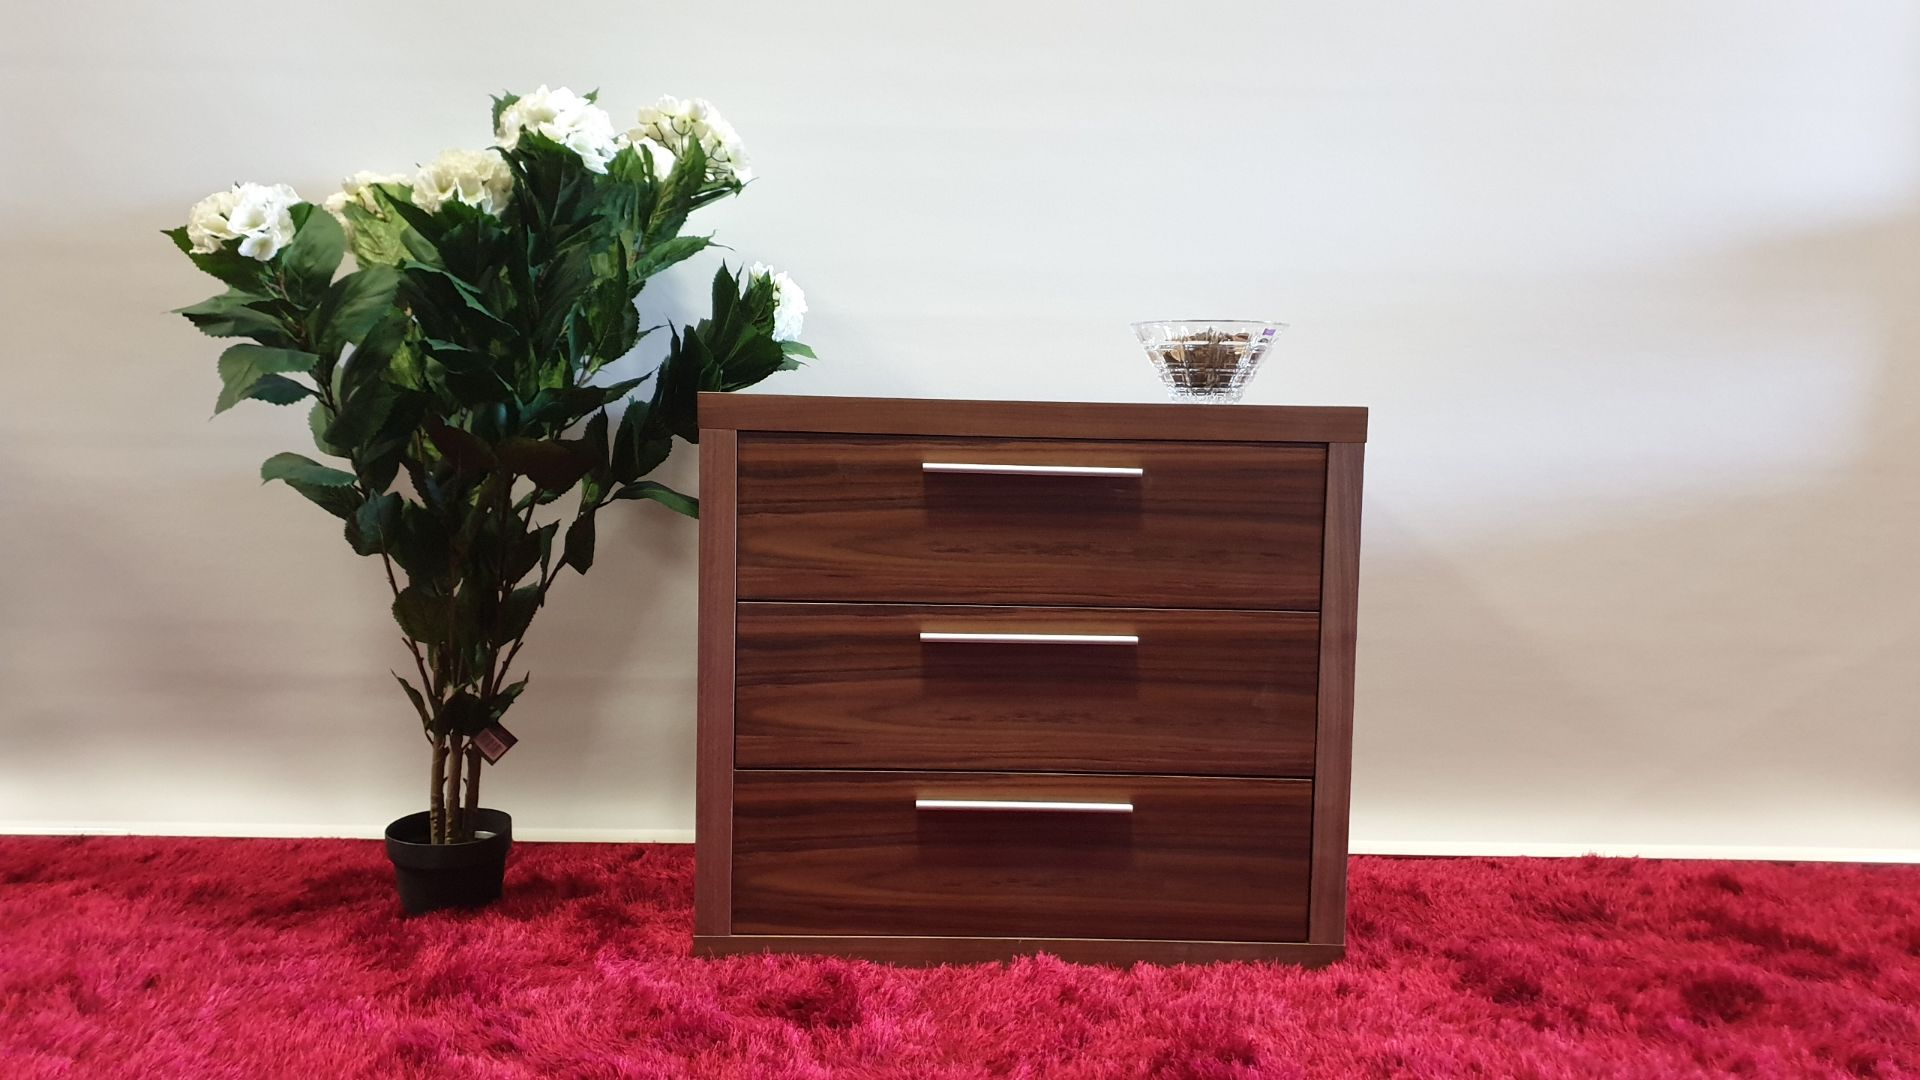 Lot 20 - BRAND NEW NATURAL WALNUT 3 DRAWER SOFT CLOSE CHEST OF DRAWERS 850 X 500 X 750MM RRP £549